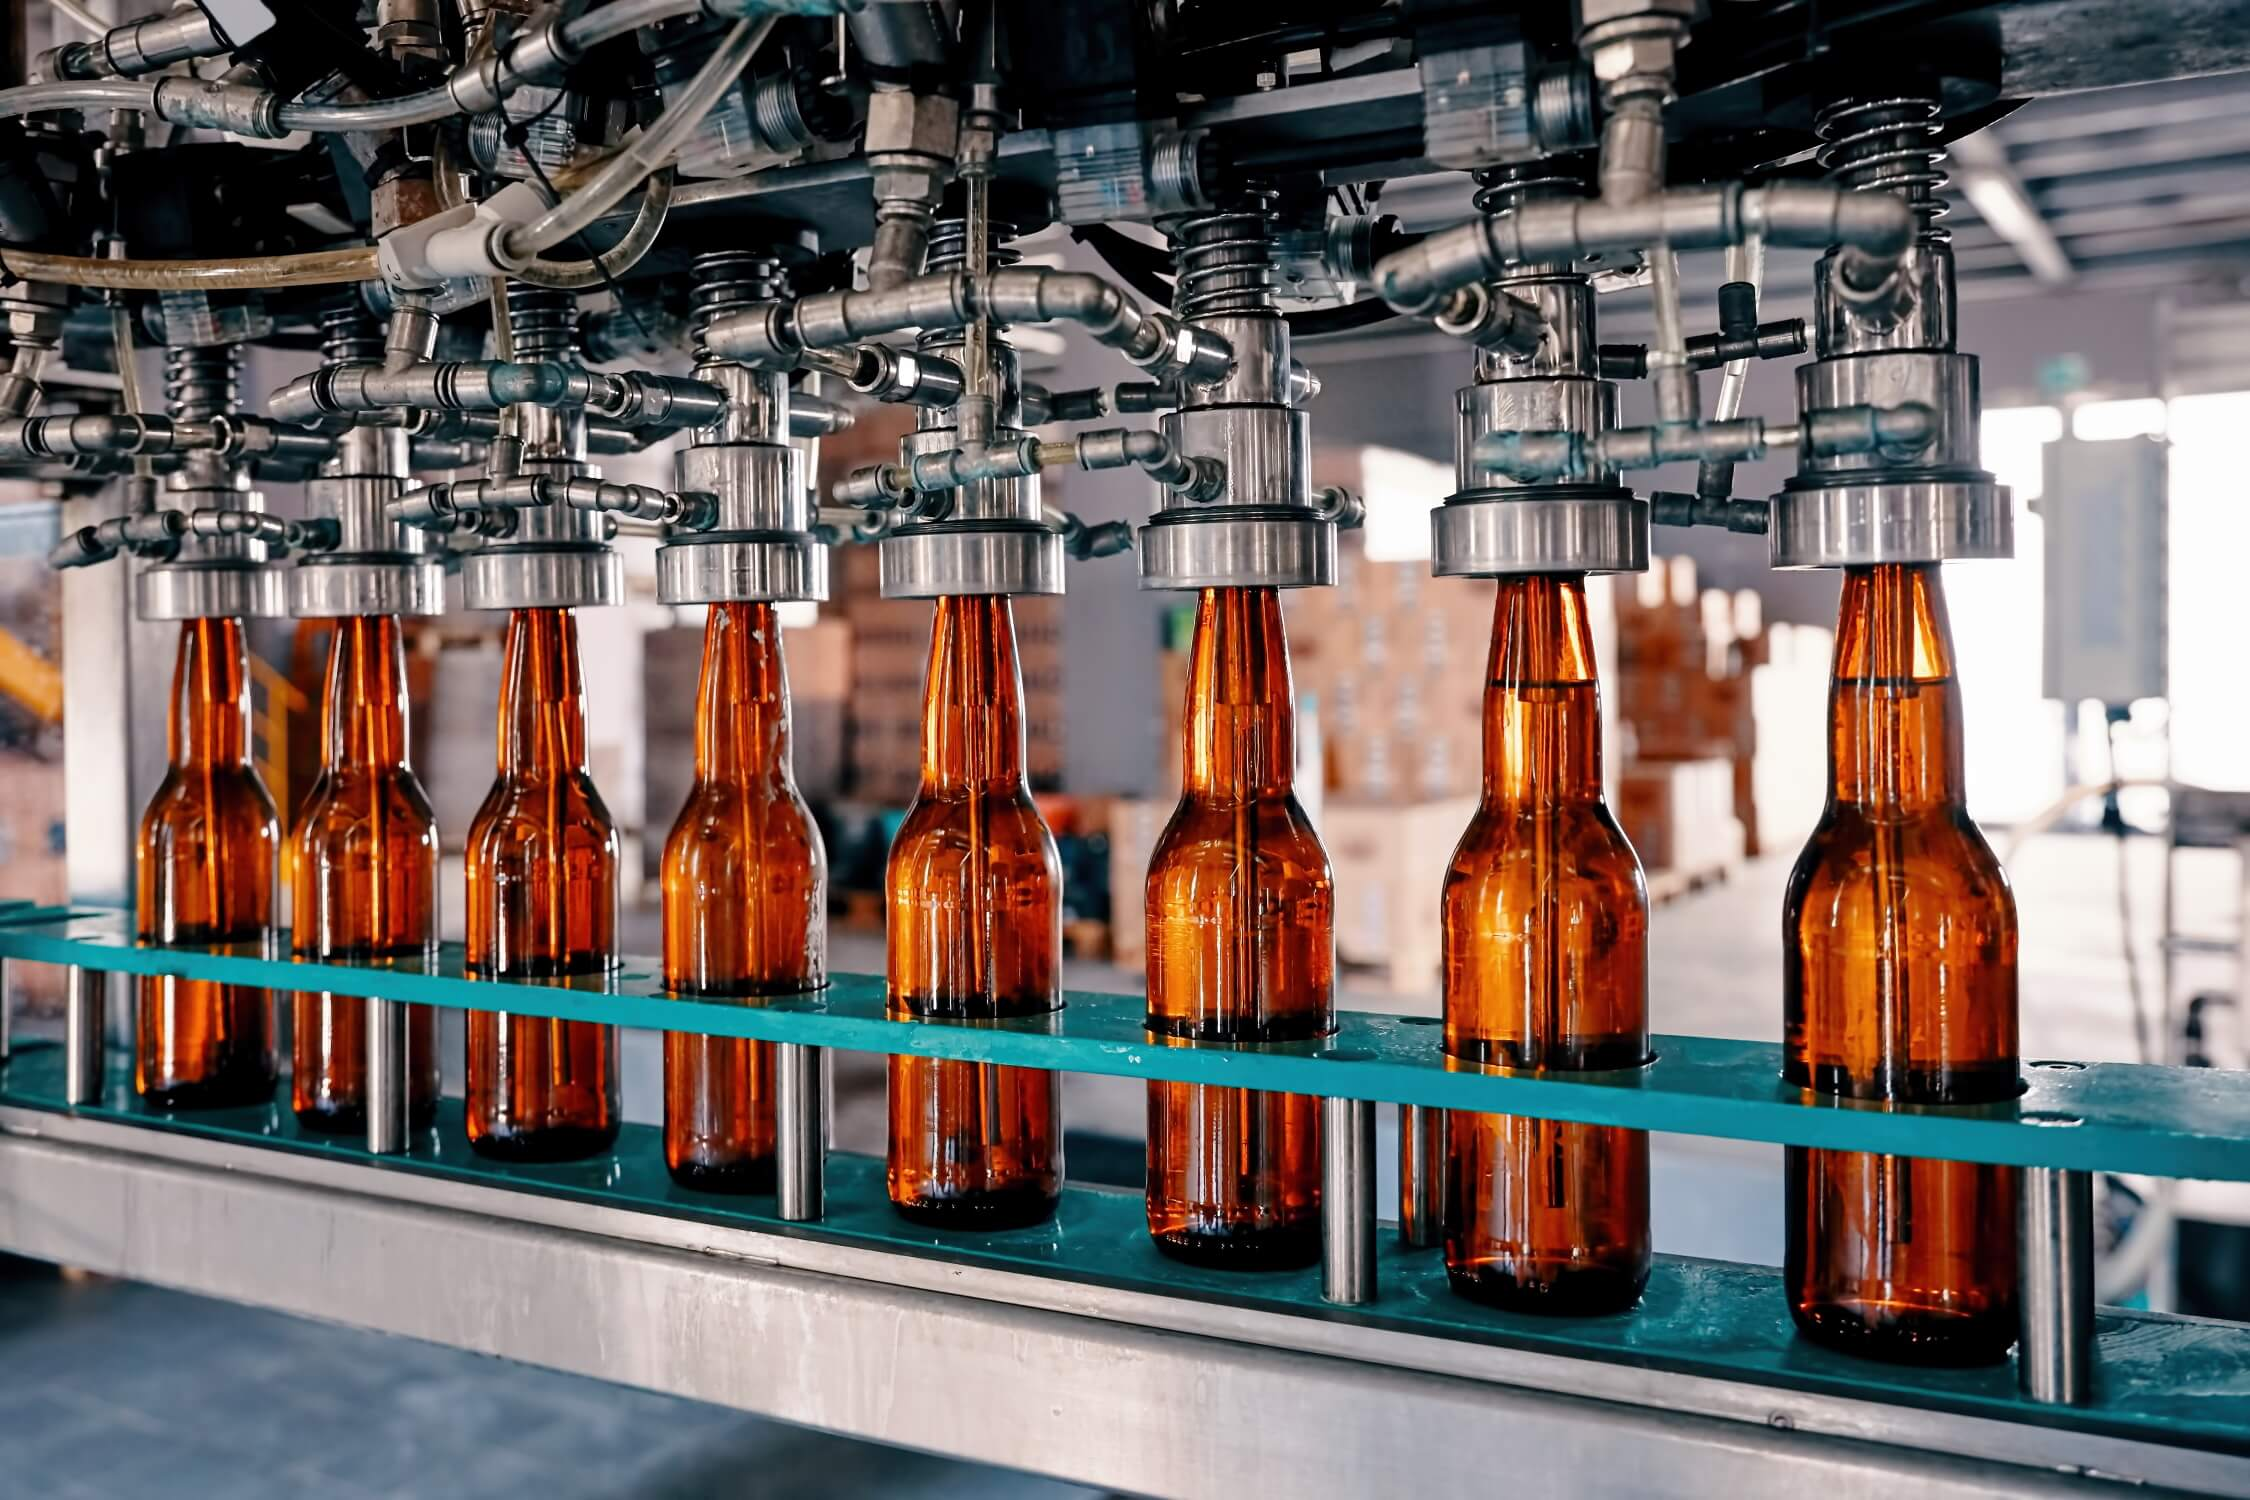 Food and beverage manufacturing faces firece competition